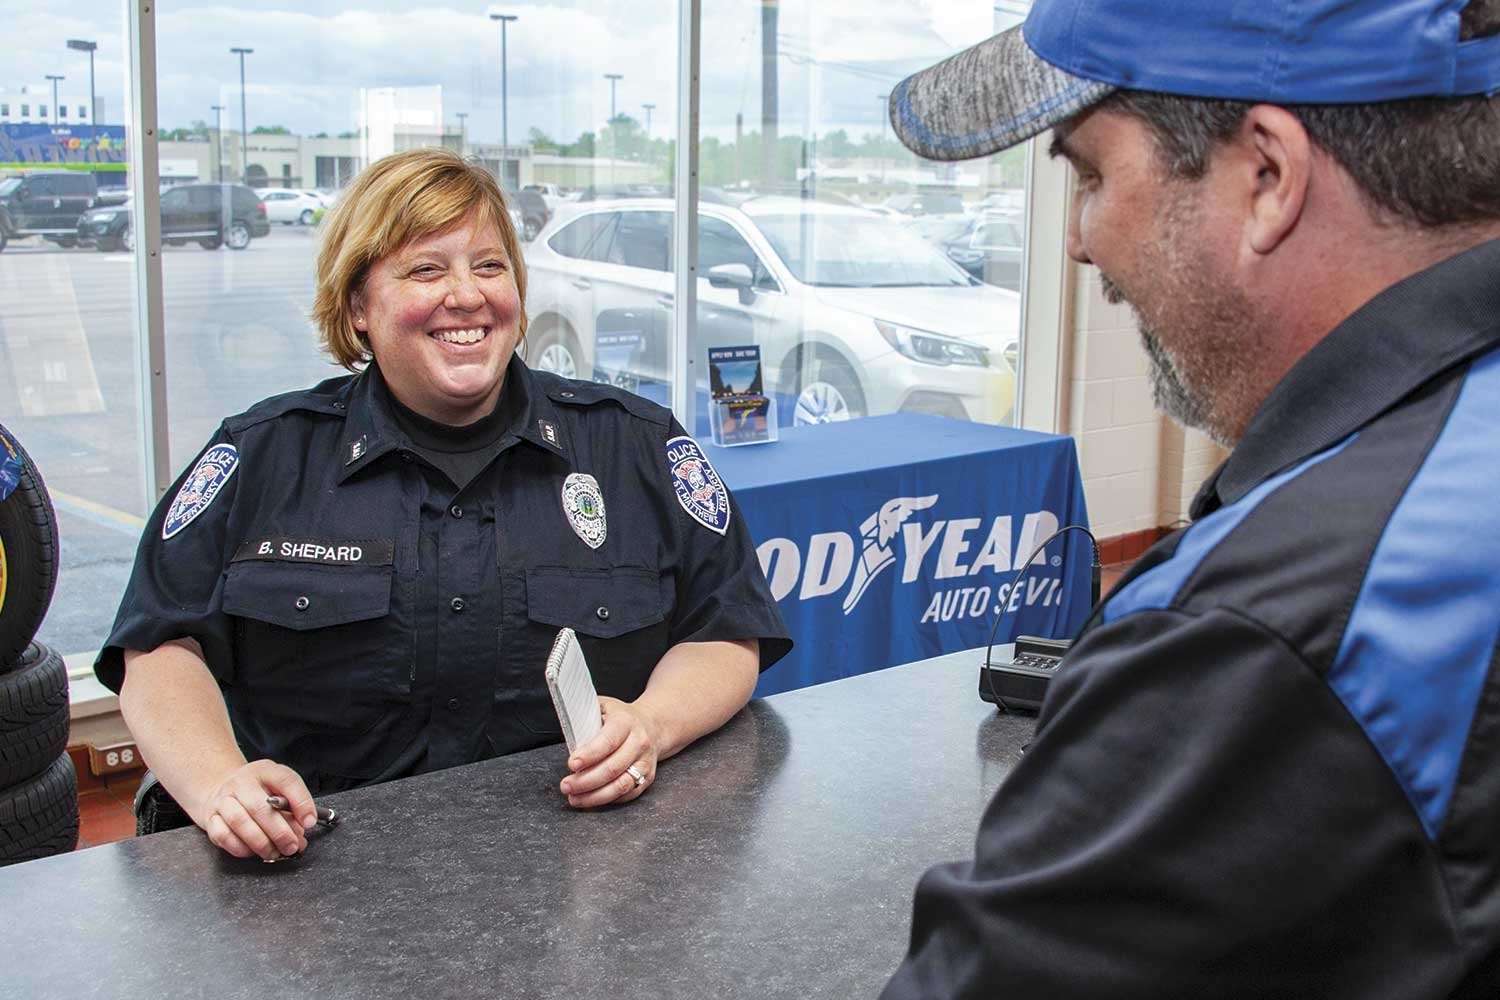 """Officer Barbara Shepard noted the importance of law enforcement developing relationship with the community. """"(Our) community is fabulous,"""" she said. """"They are very supportive."""" In return, SMPD strives to provide citizens with rapid-response time and superior service. (Photo by Jim Robertson)"""